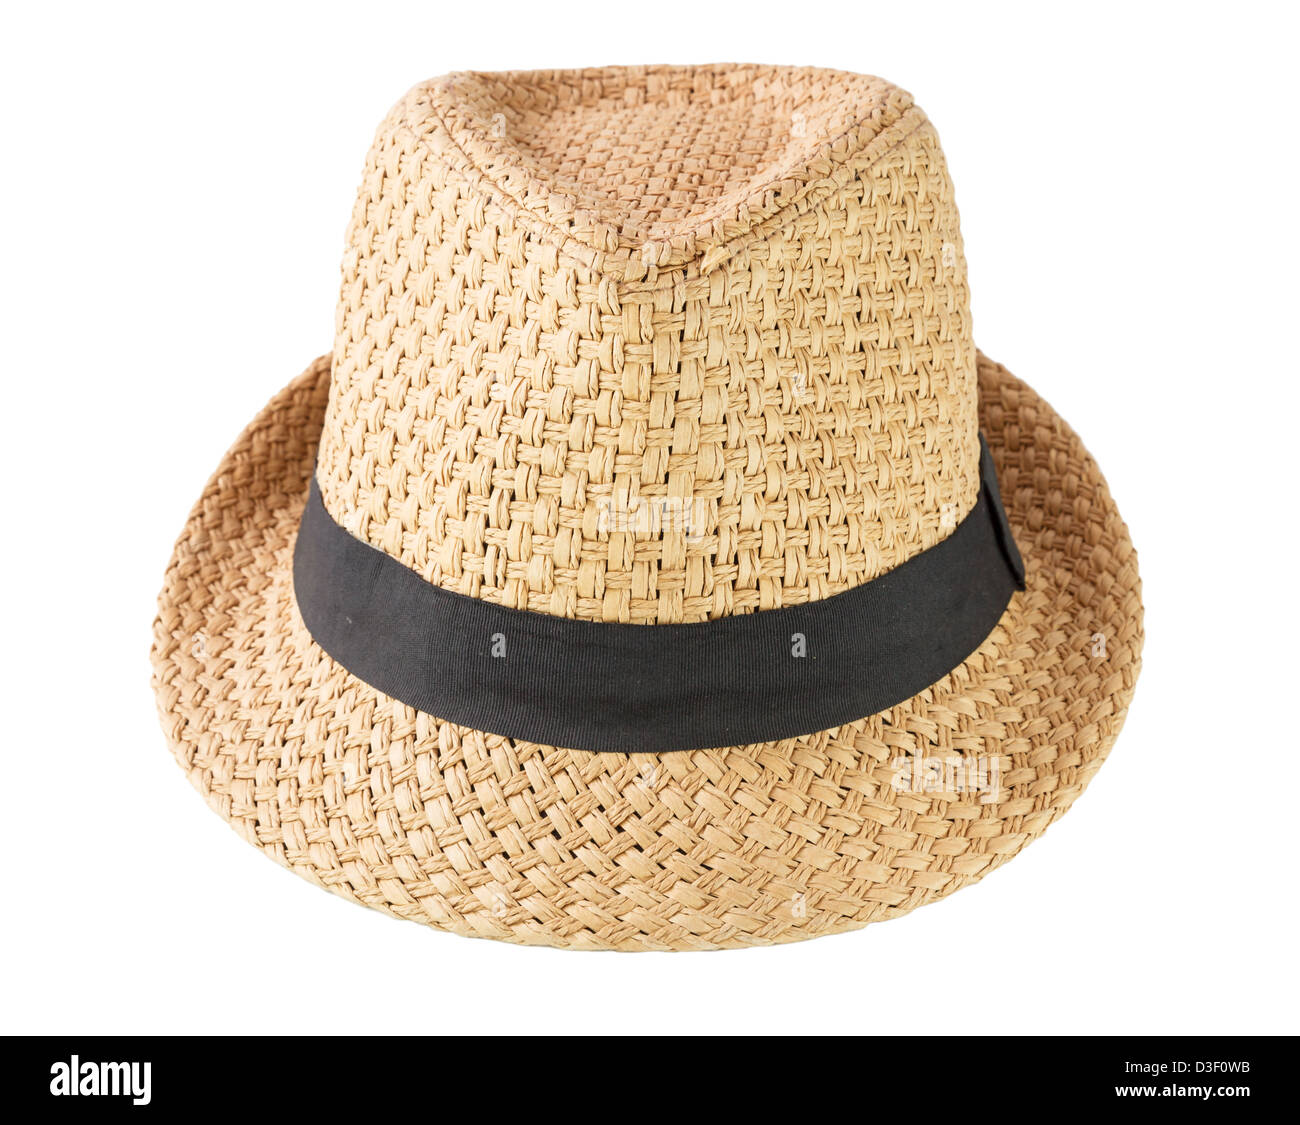 A woven fashion hat isolate on white background - Stock Image